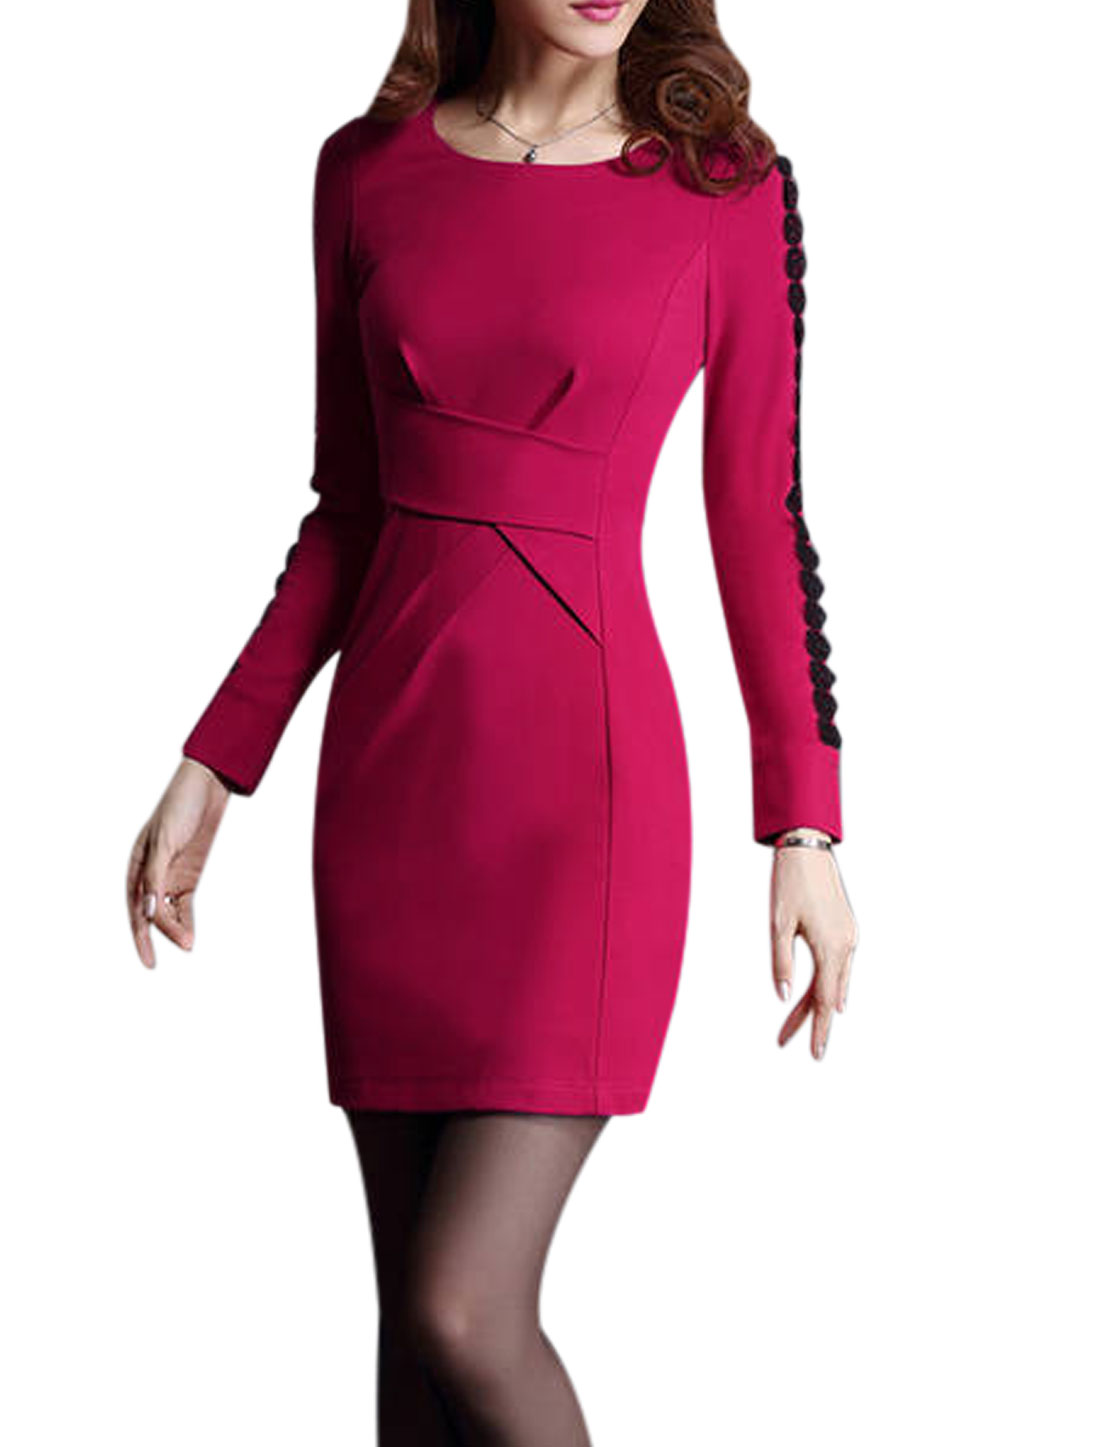 Lady Long Sleeve Conceal Zipper Side Pencil Dress Fuchsia M